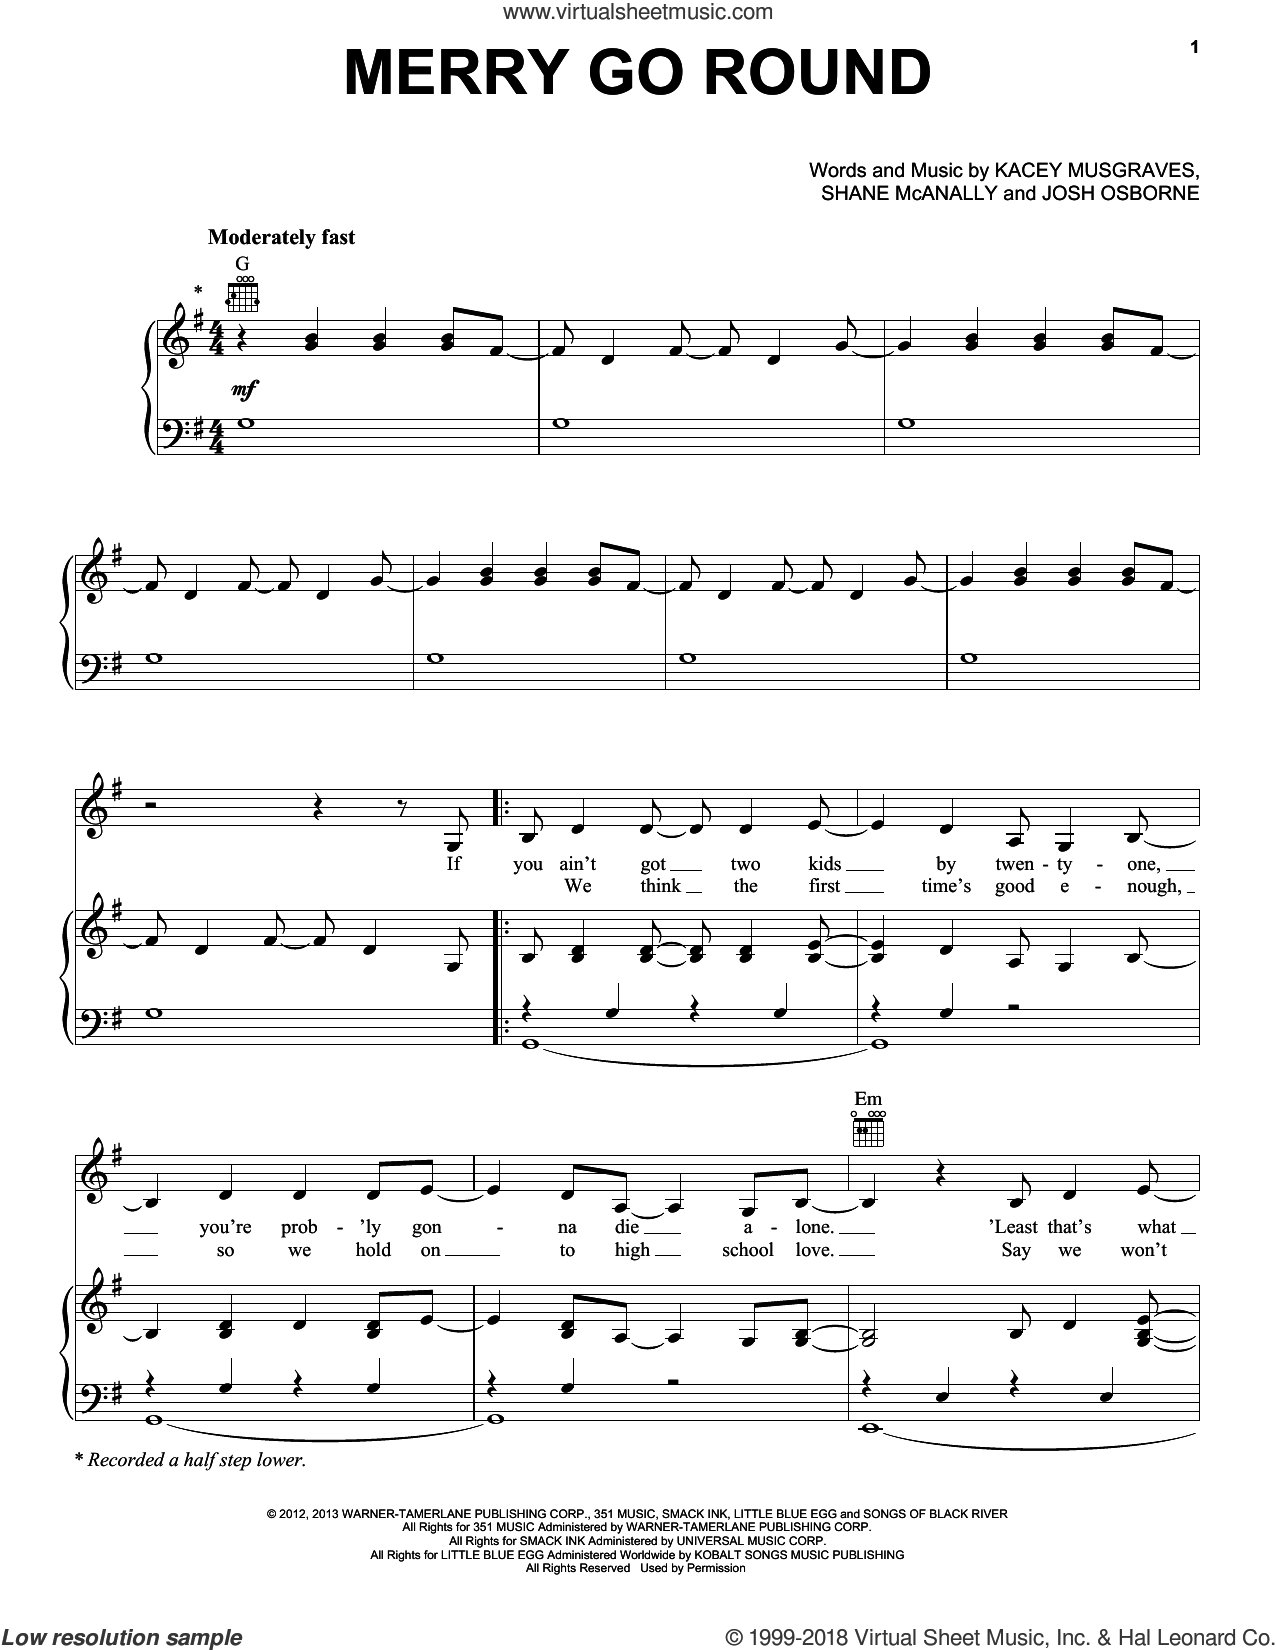 Merry Go Round sheet music for voice, piano or guitar by Kacey Musgraves, Josh Osborne and Shane McAnally, intermediate skill level